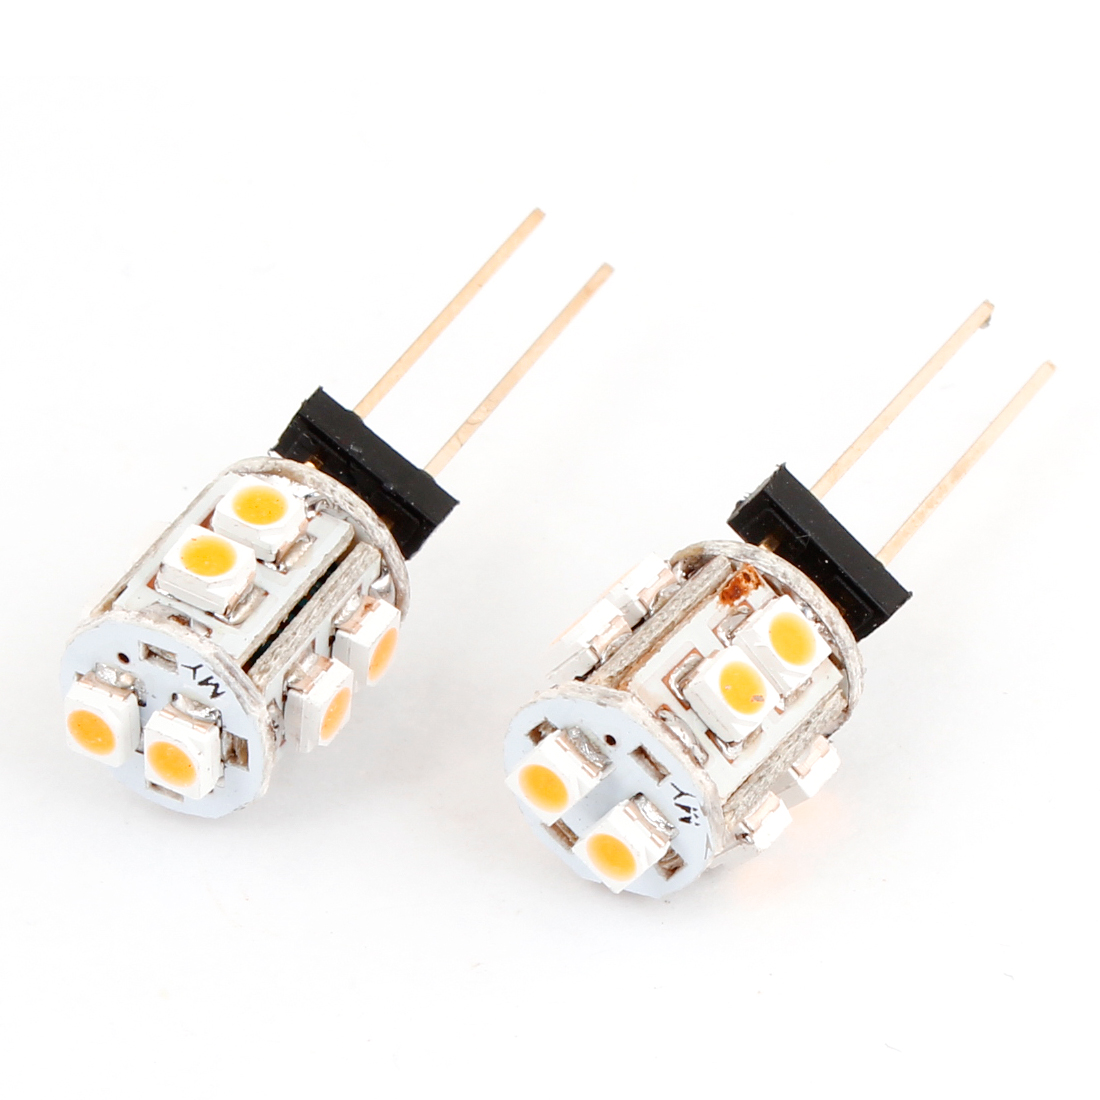 Auto Car G4 Pin 1210 10 SMDs Warm White Light Bulbs